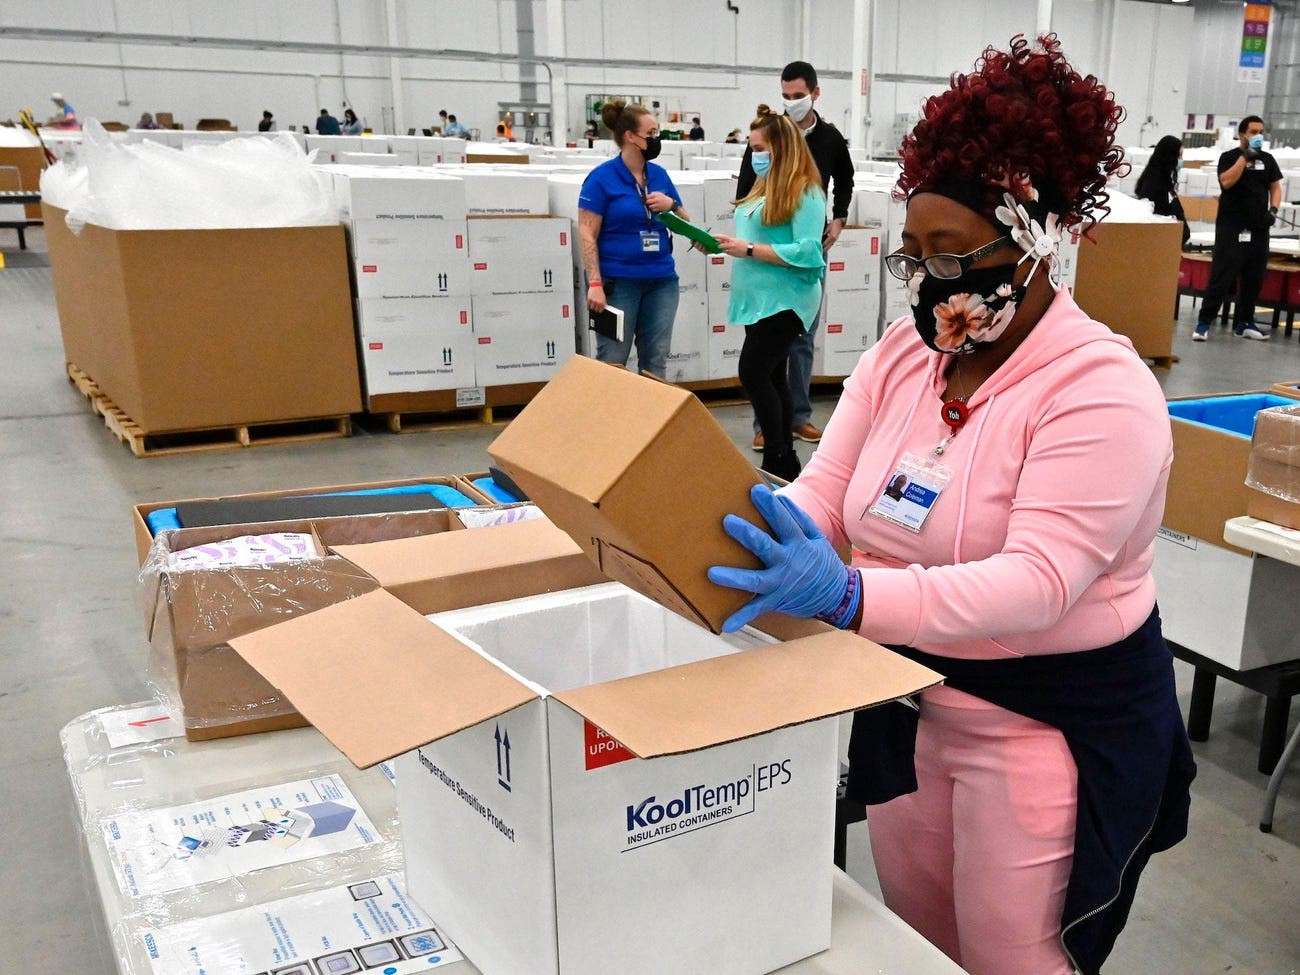 An employee with the McKesson Corp. packs a box of the Johnson & Johnson COVID-19 vaccine into a cooler in Shepherdsville, Kentucky.